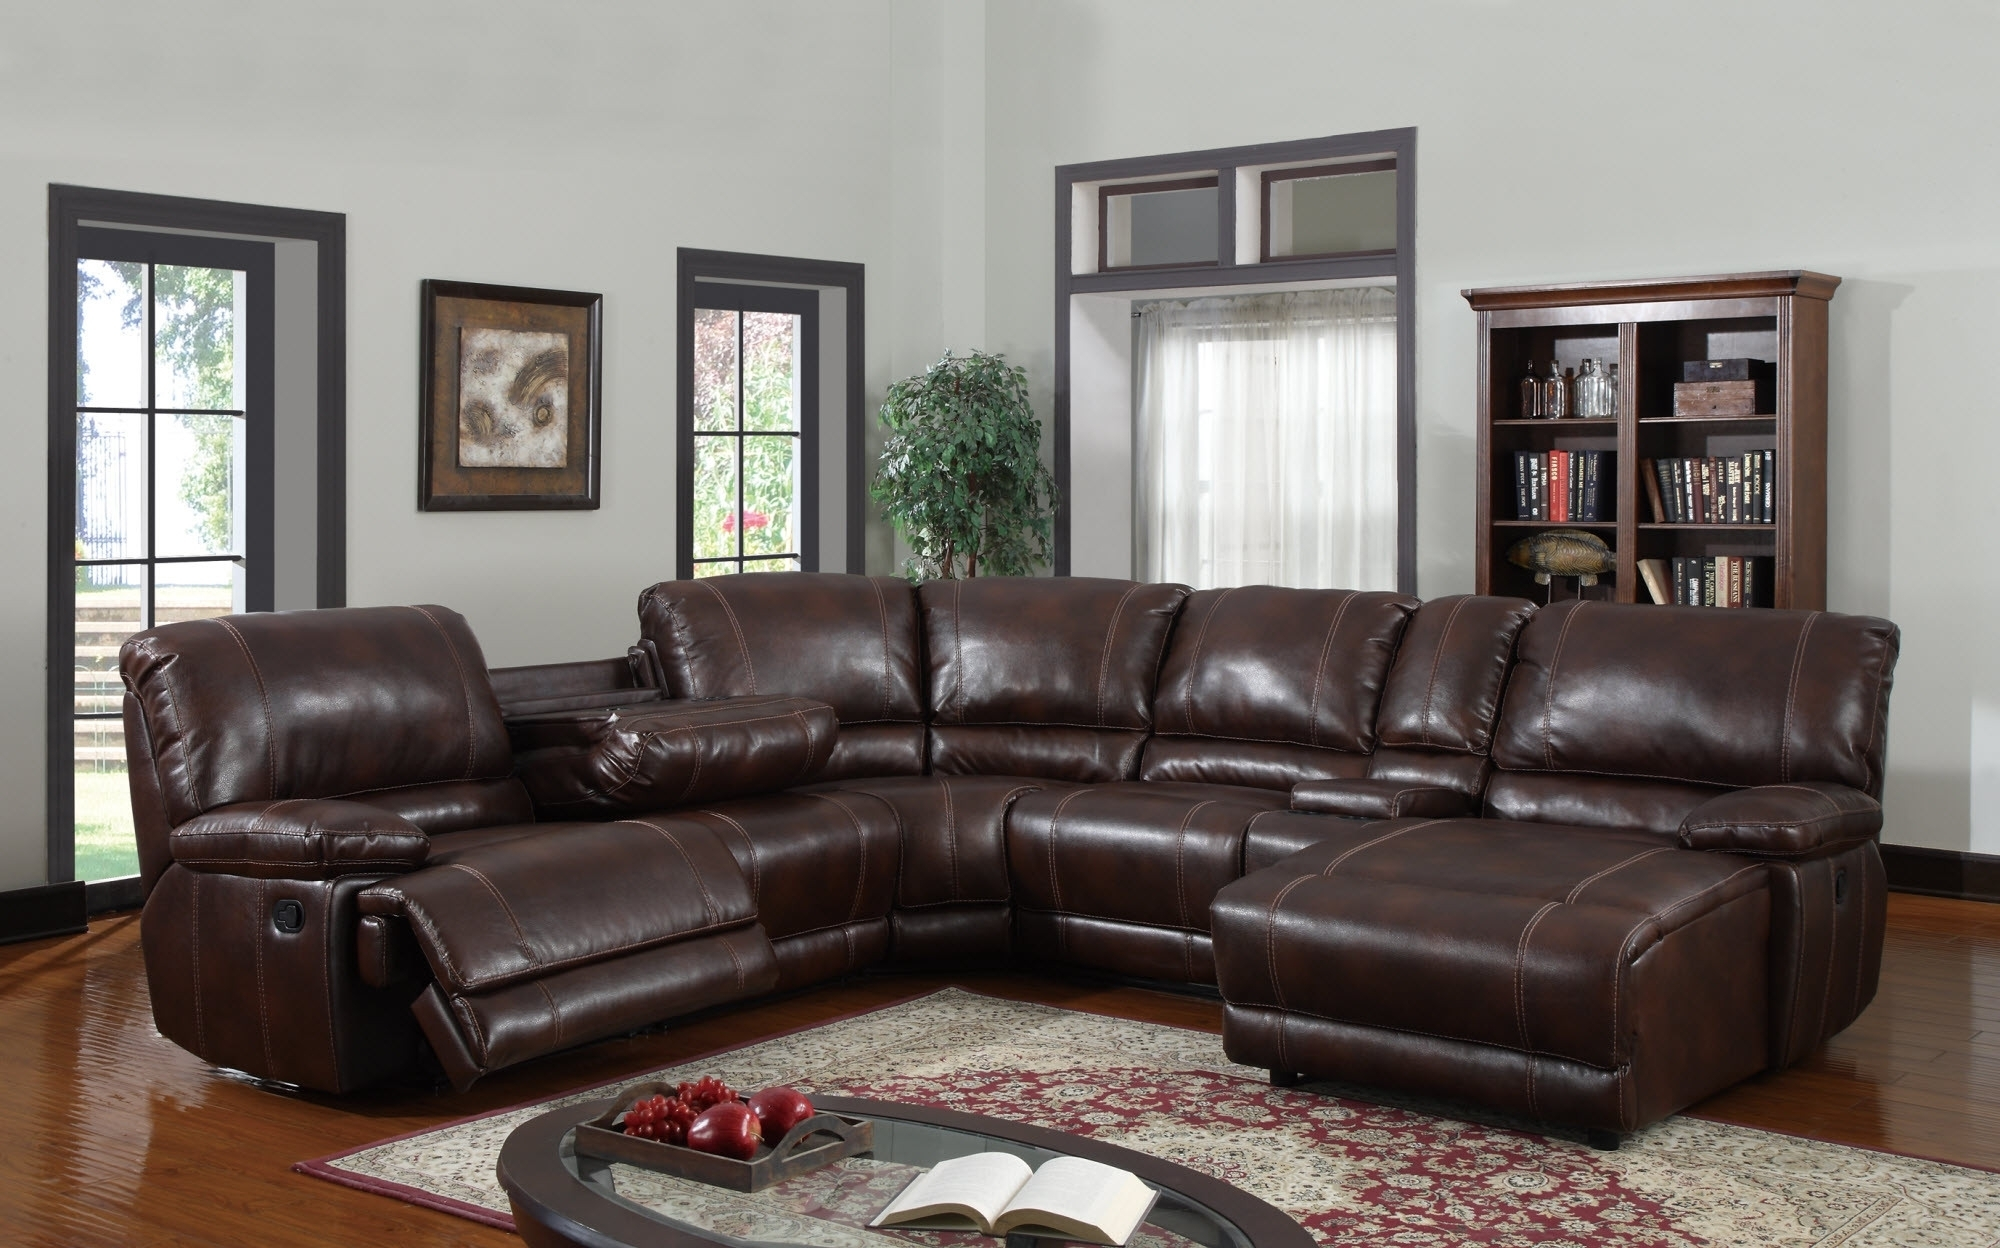 6 Piece Sectional Sofa Leather • Sectional Sofa within 6 Piece Leather Sectional Sofas (Image 5 of 10)